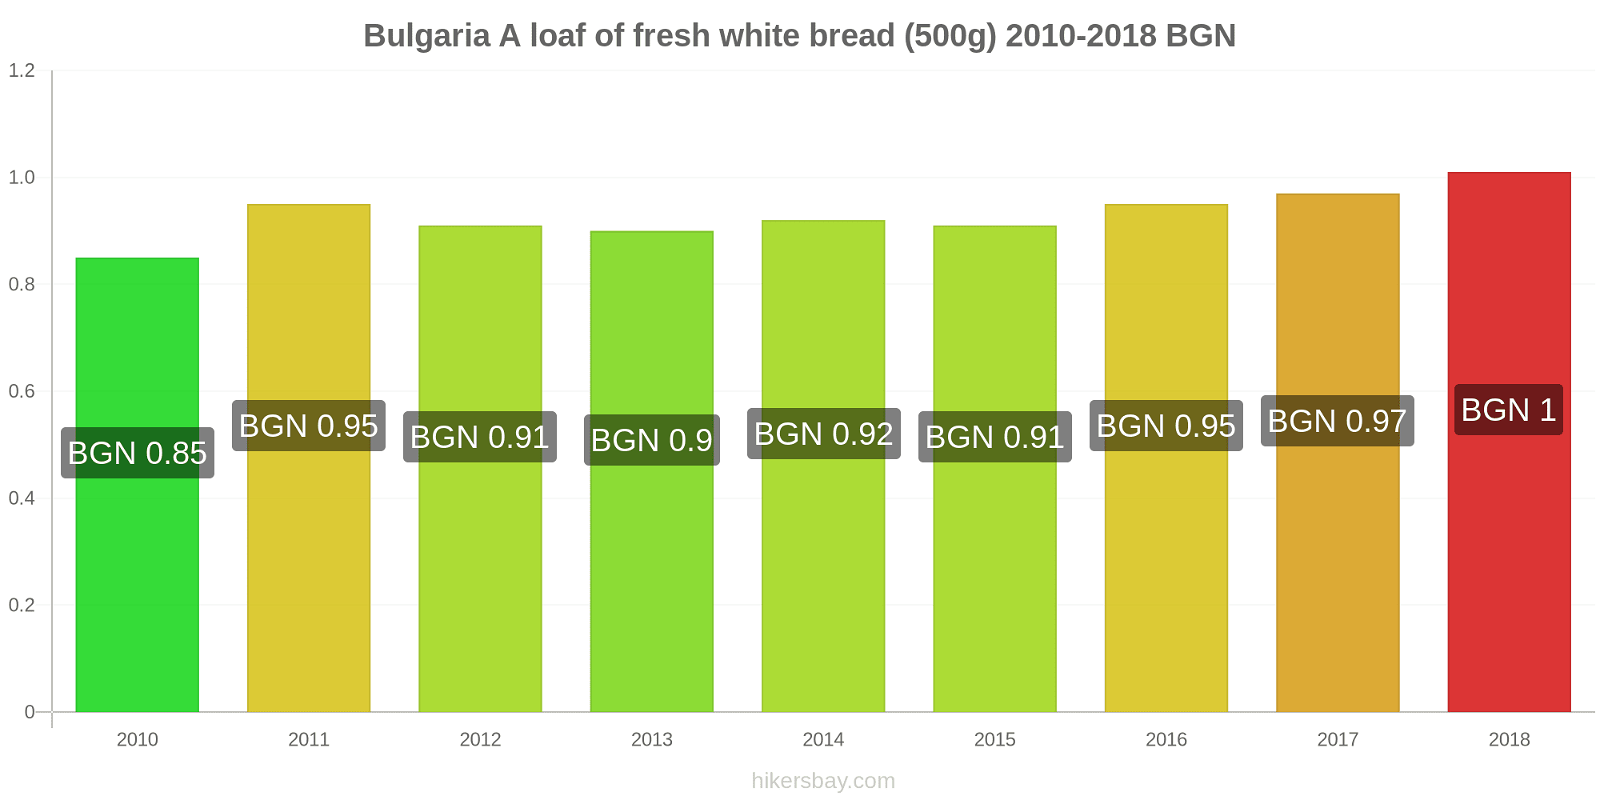 Bulgaria price changes A loaf of fresh white bread (500g) hikersbay.com